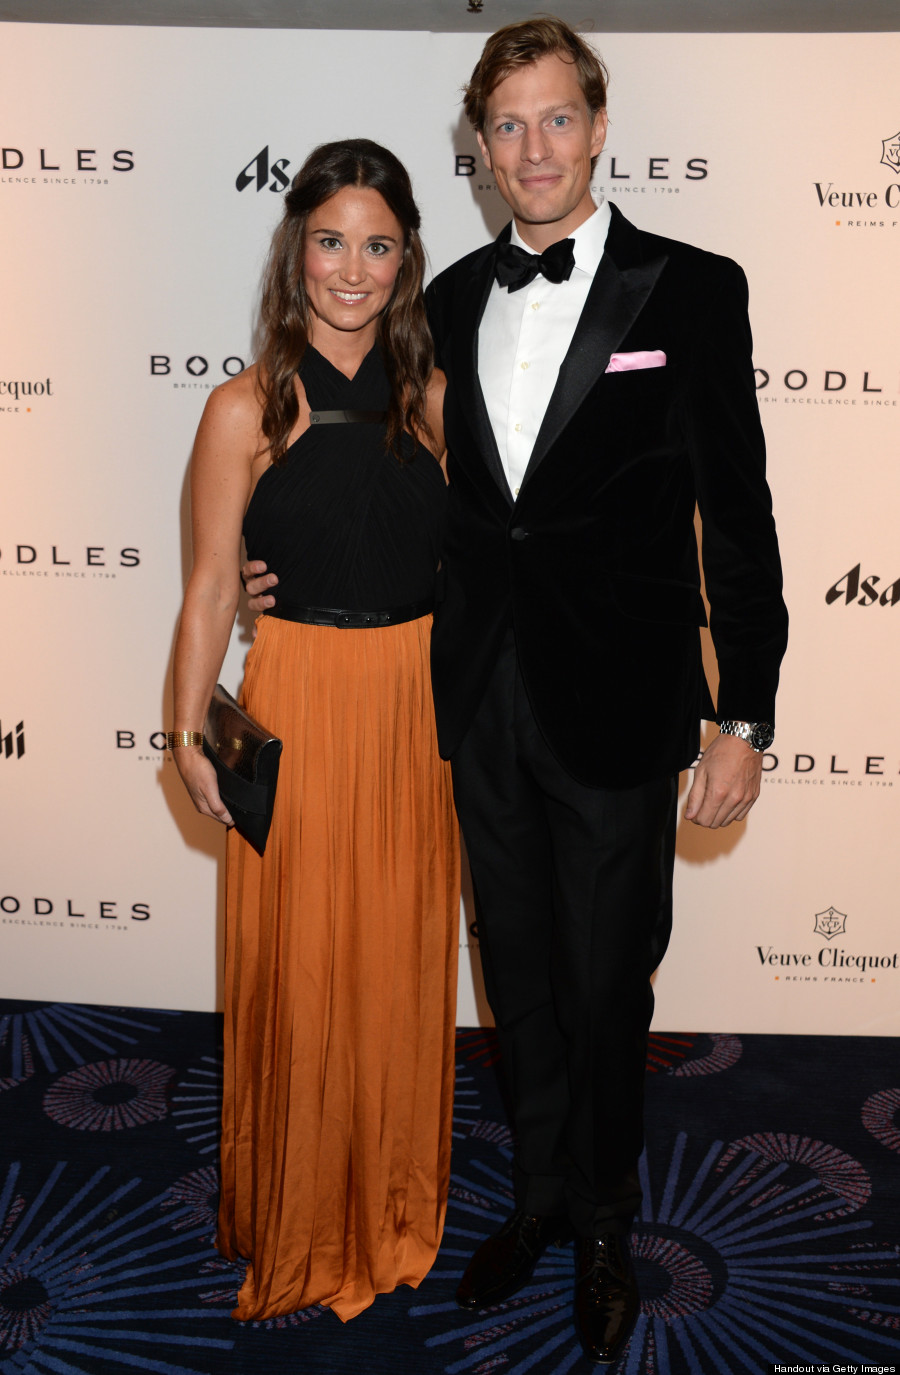 The Boodles Boxing Ball 2013